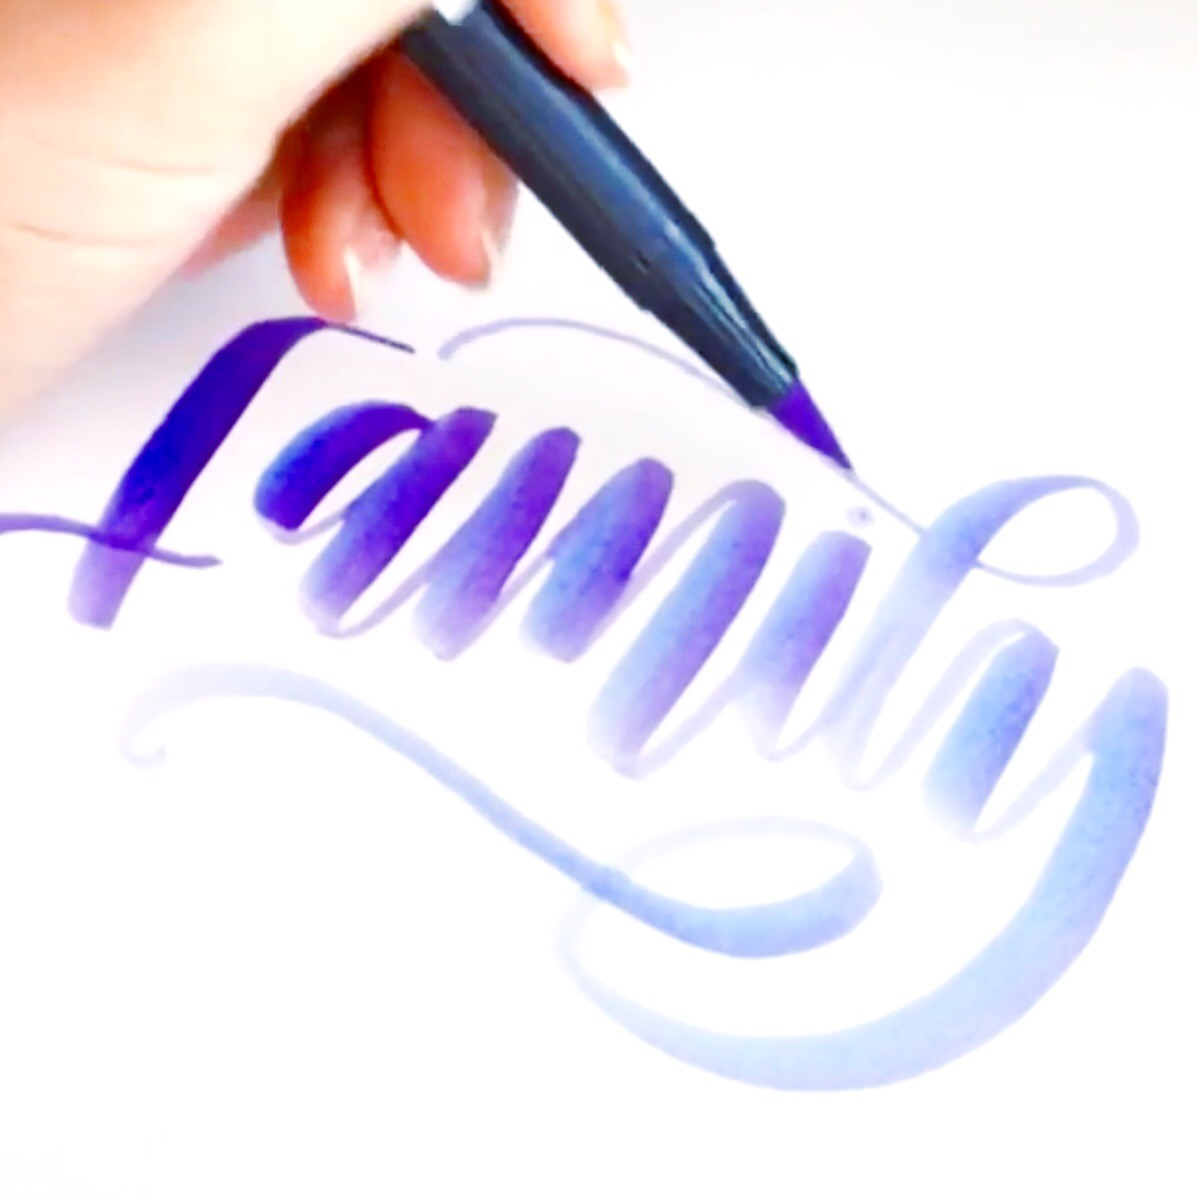 Lauren of @renmadecalligraphy shares 5 tips for learning how to letter with Tombow Dual Brush Pens.